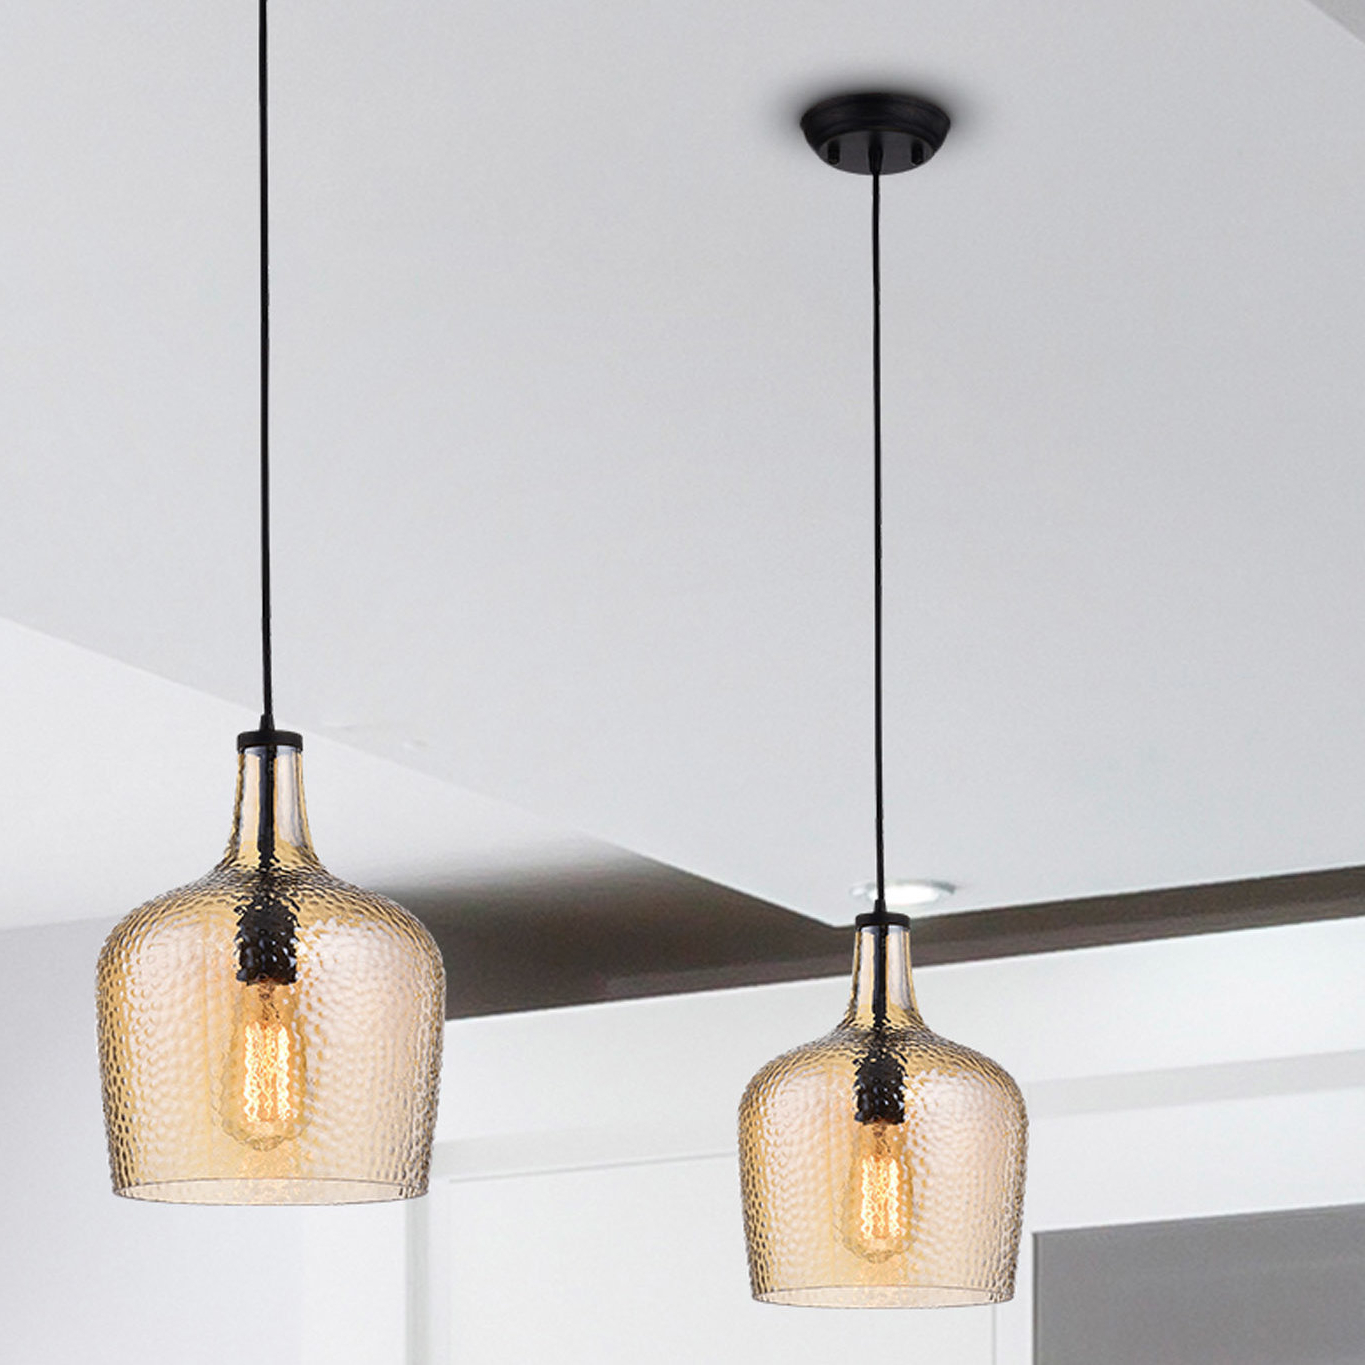 Preferred Scruggs 1 Light Geometric Pendants Throughout Williston Forge Scruggs 1 Light Geometric Pendant & Reviews (View 11 of 20)